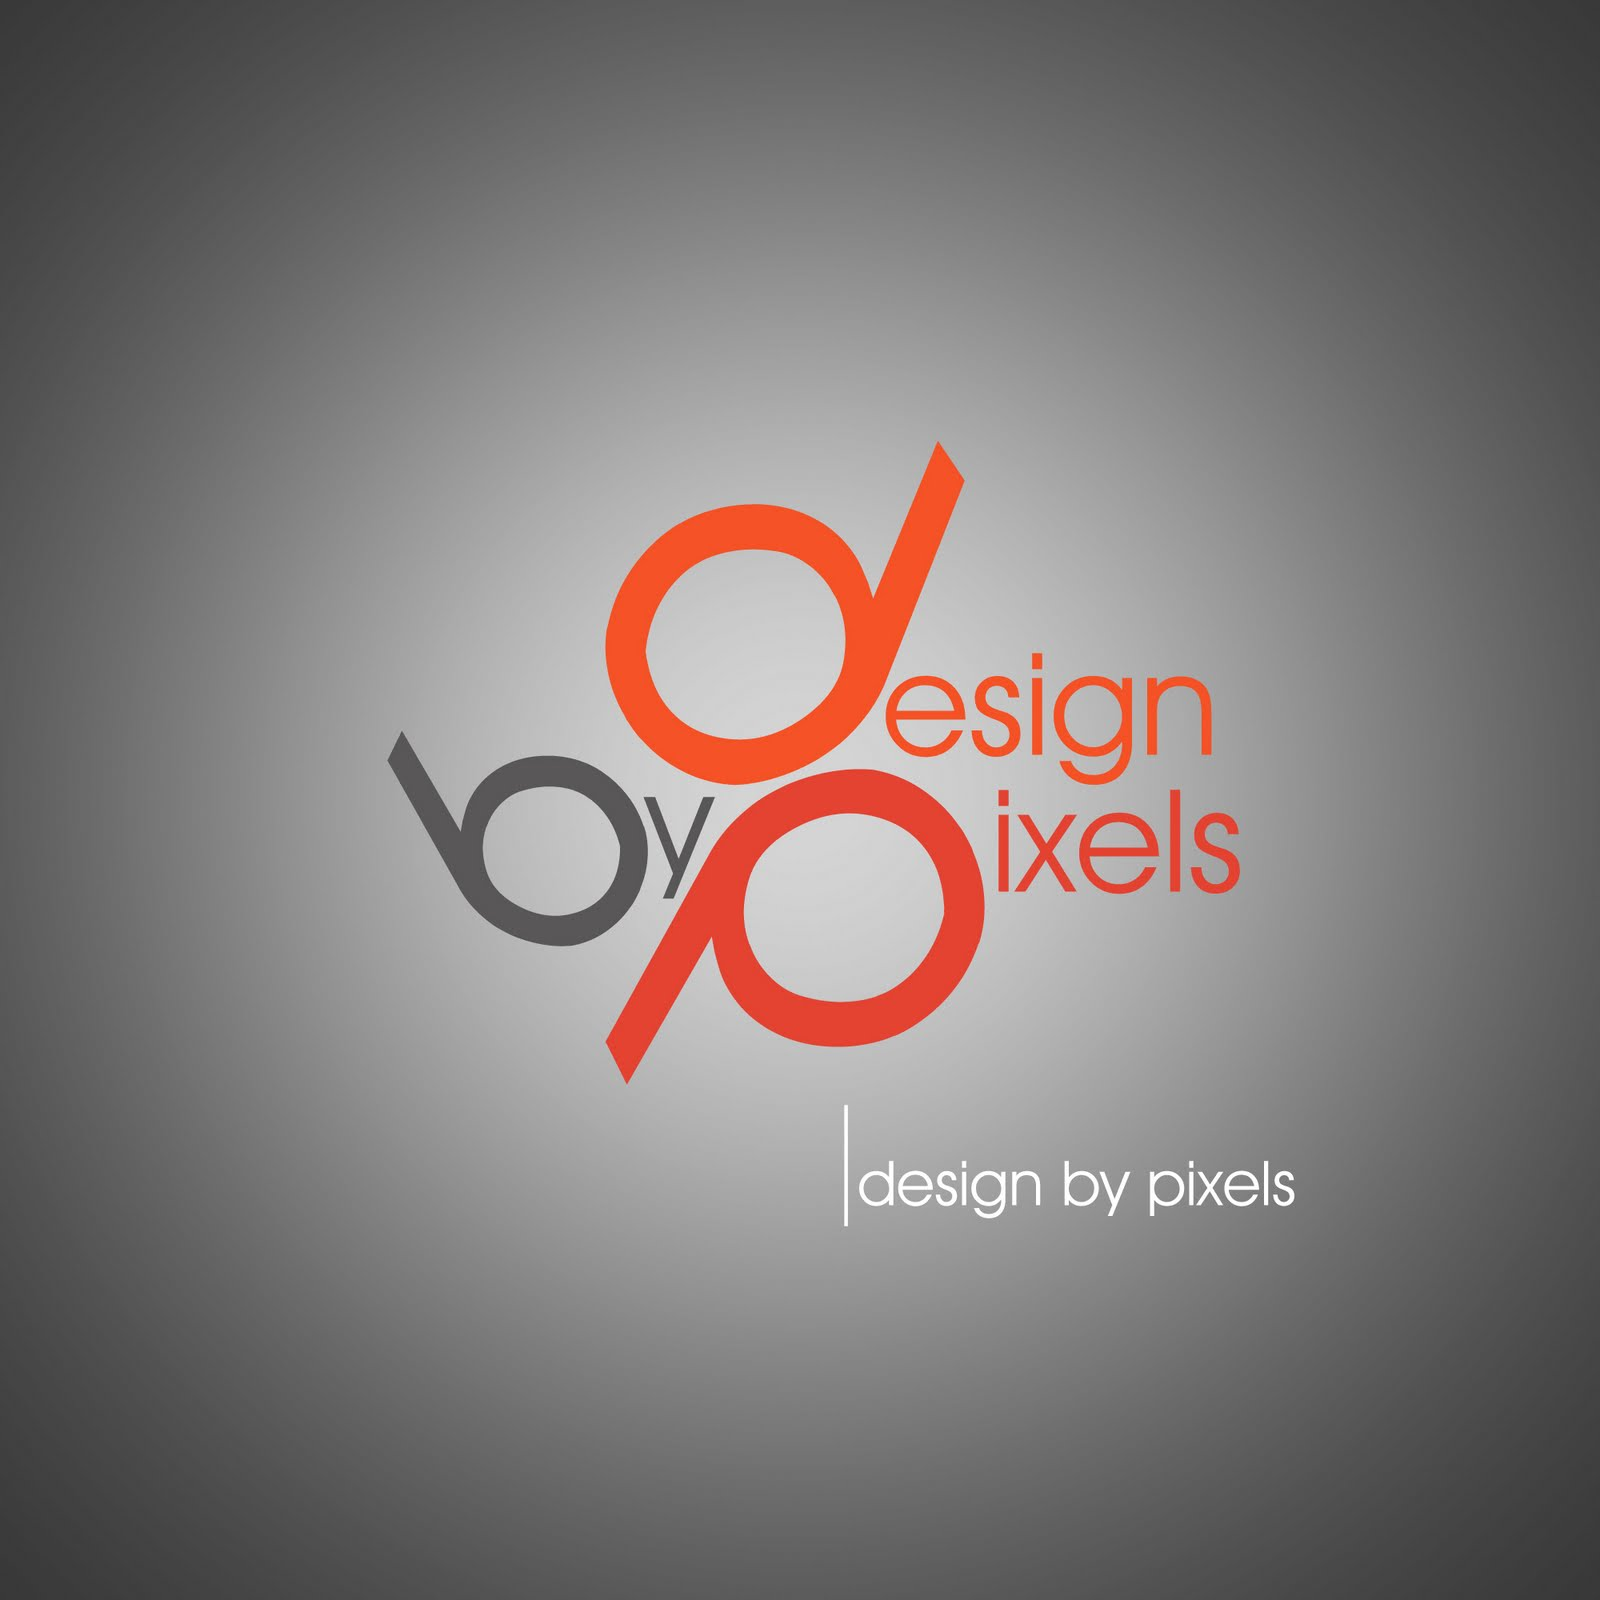 design by pixels